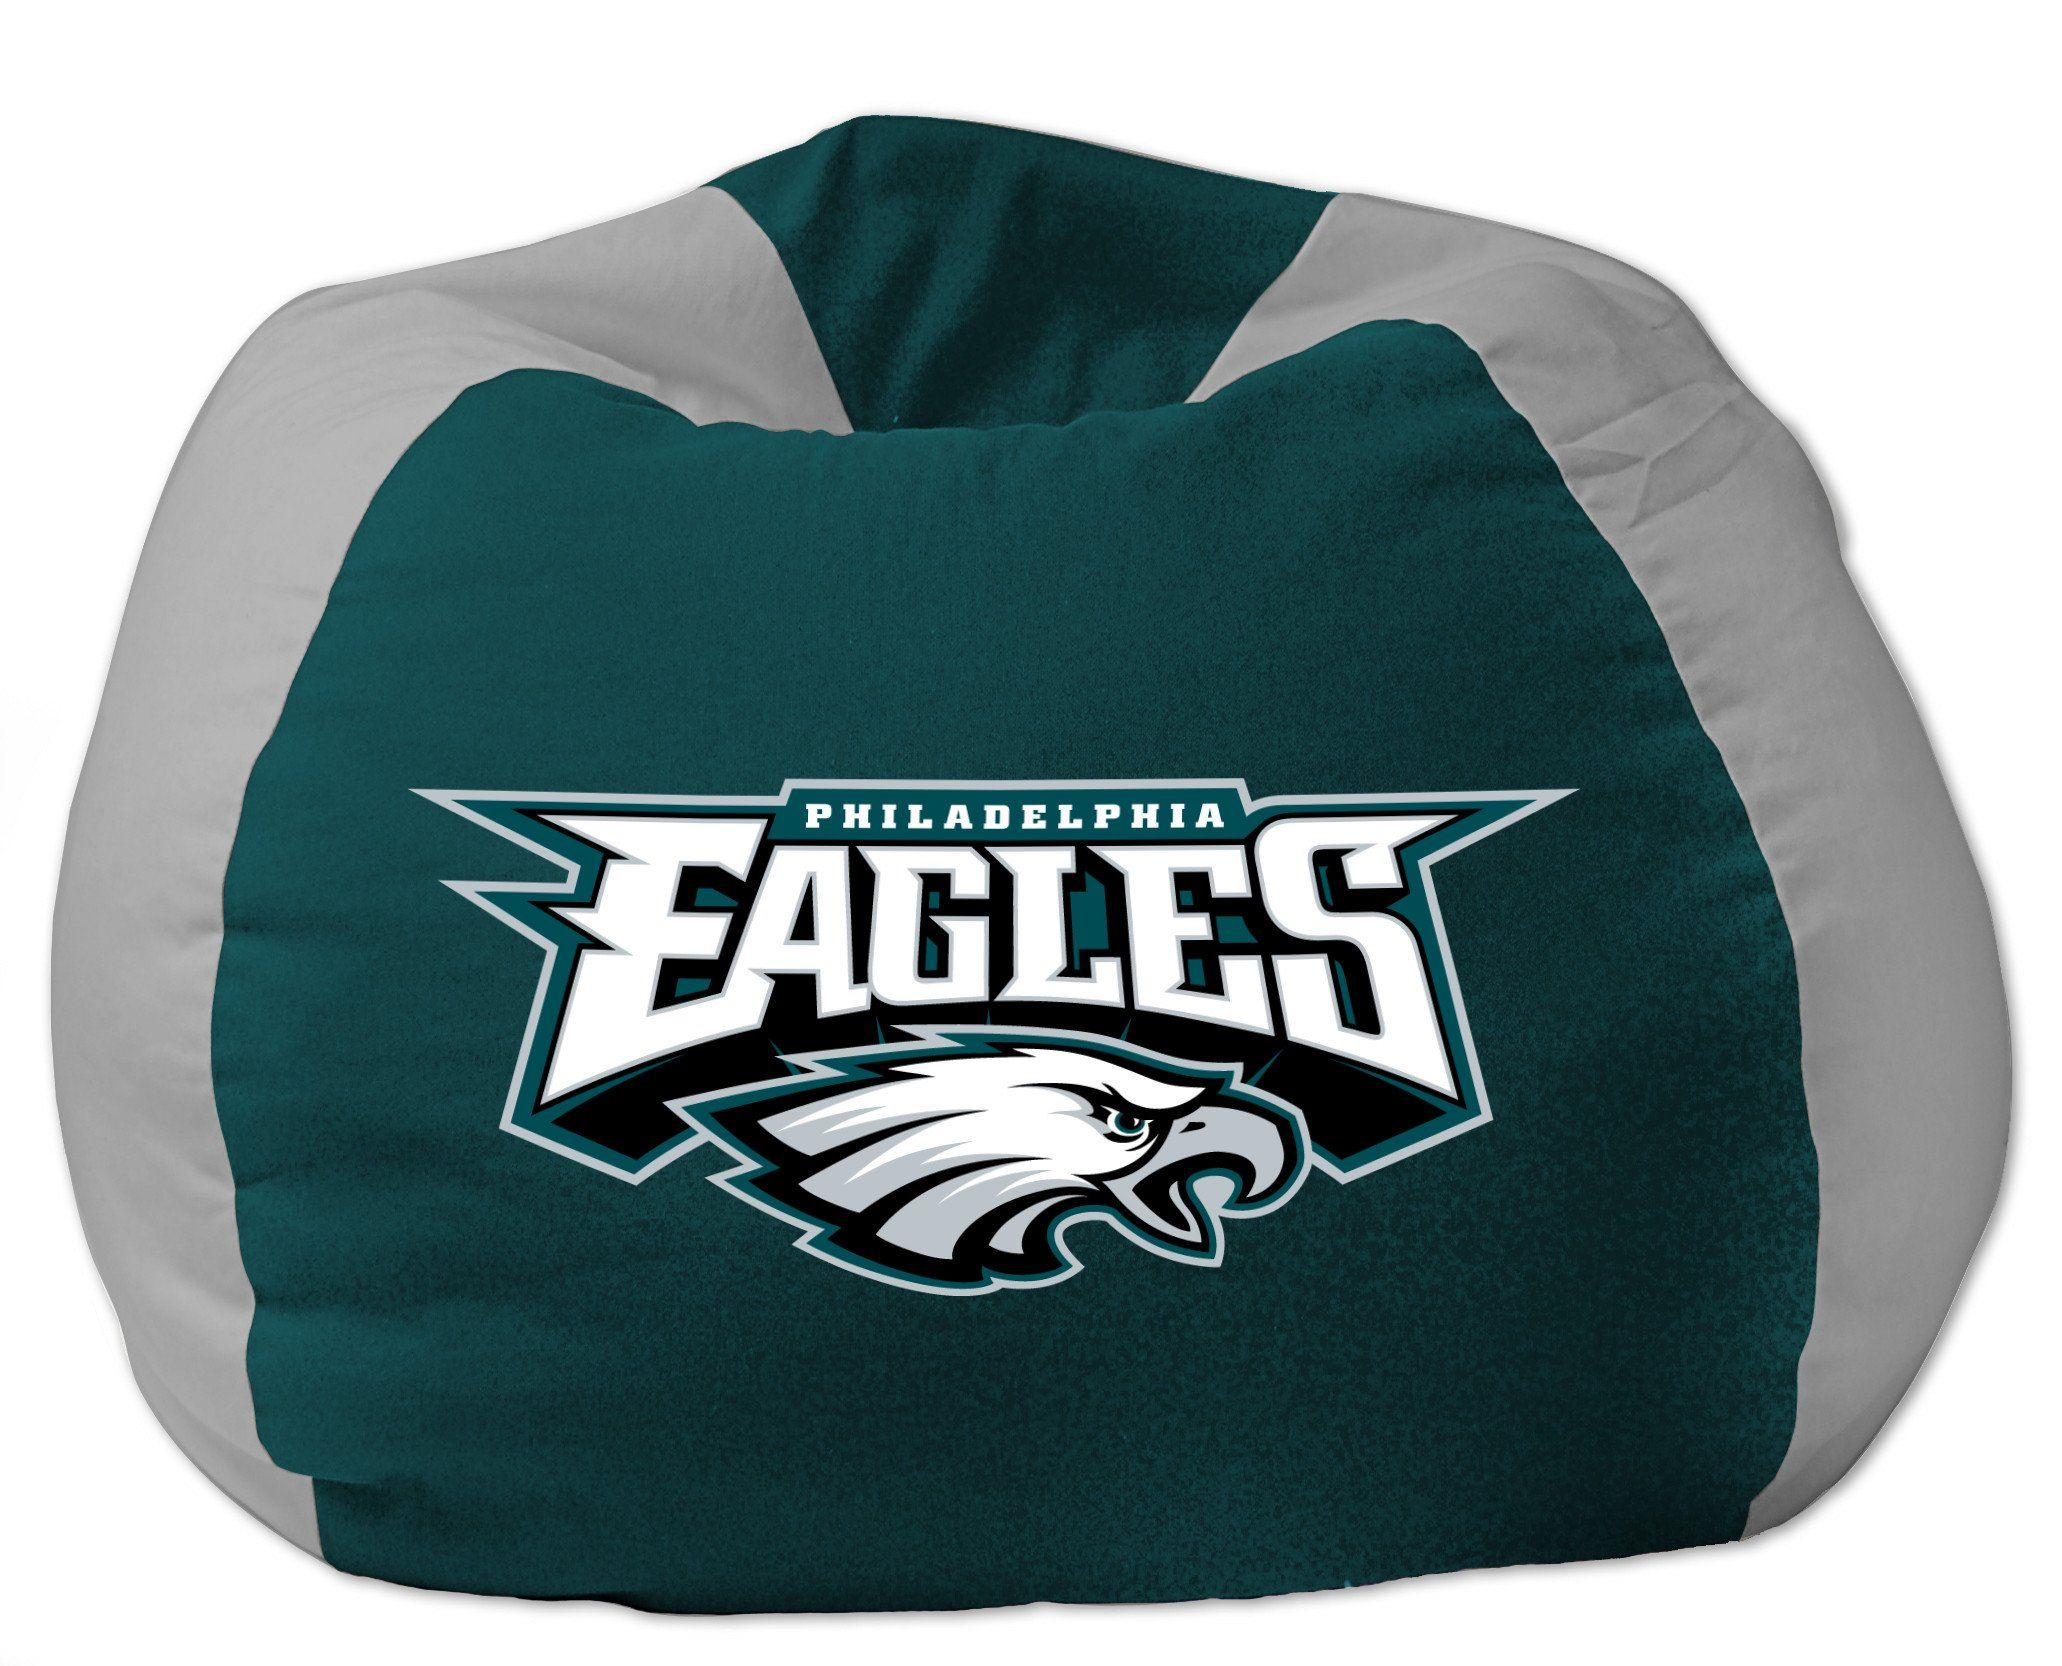 Eagles bean bag chair with images philadelphia eagles